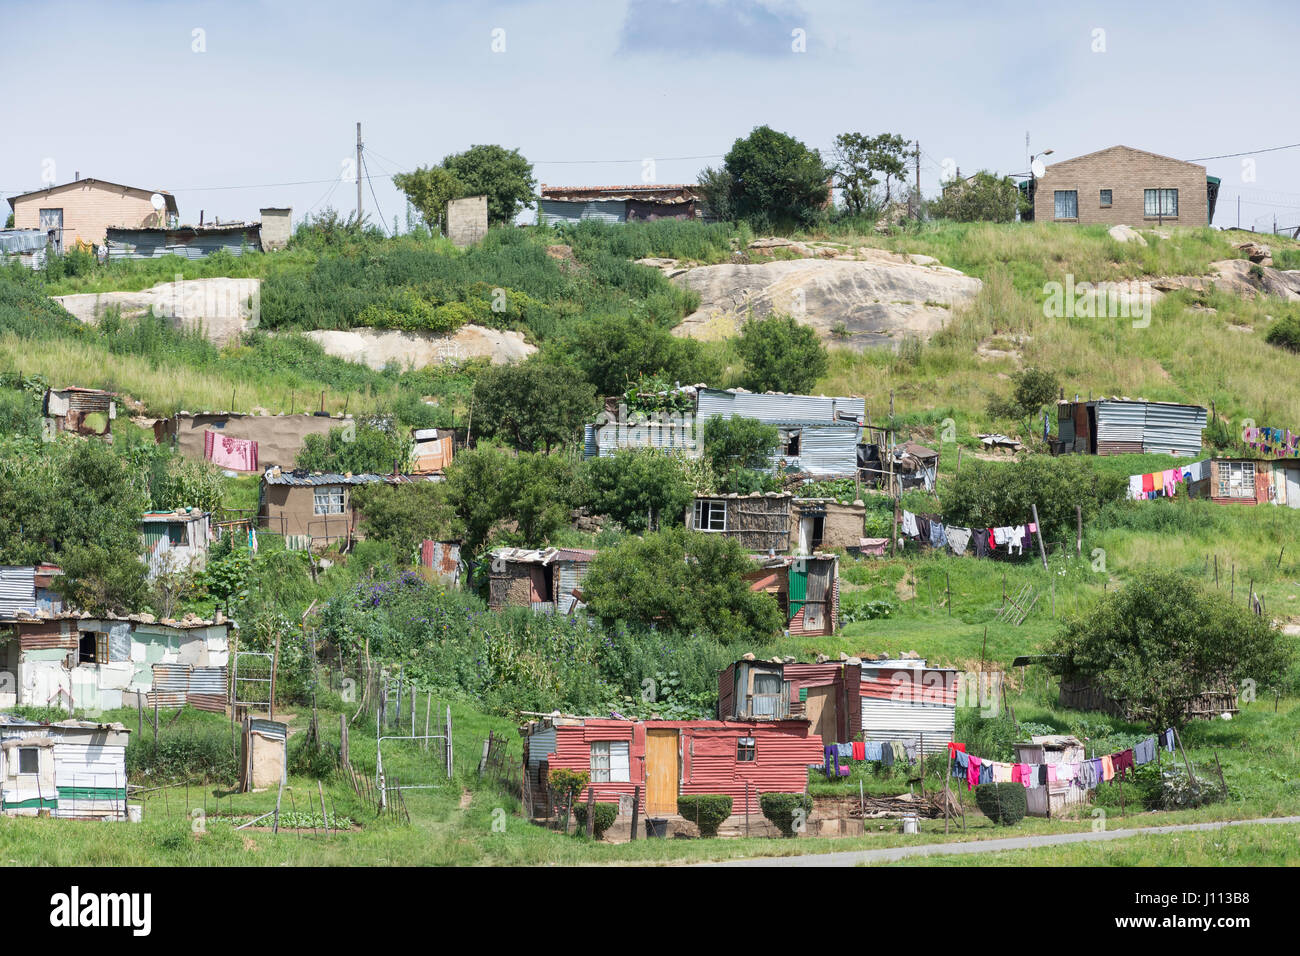 Black township shacks outside Clarens, Free State Province, South Africa - Stock Image